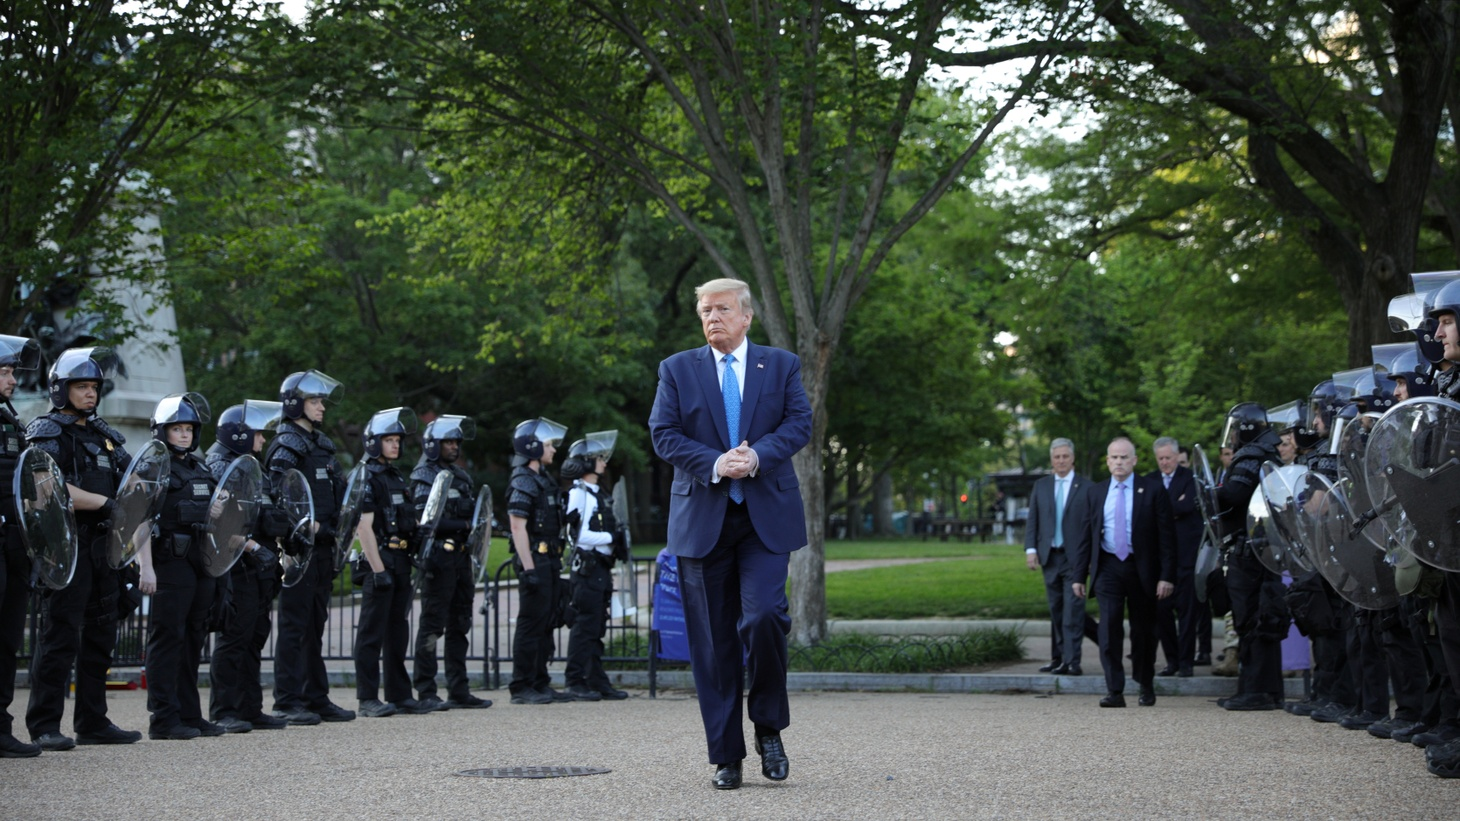 U.S. President Donald Trump walks between lines of riot police in Lafayette Park across from the White House, after walking to St. John's Church for a photo opportunity during protests in the wake of the death of George Floyd. June 1, 2020.